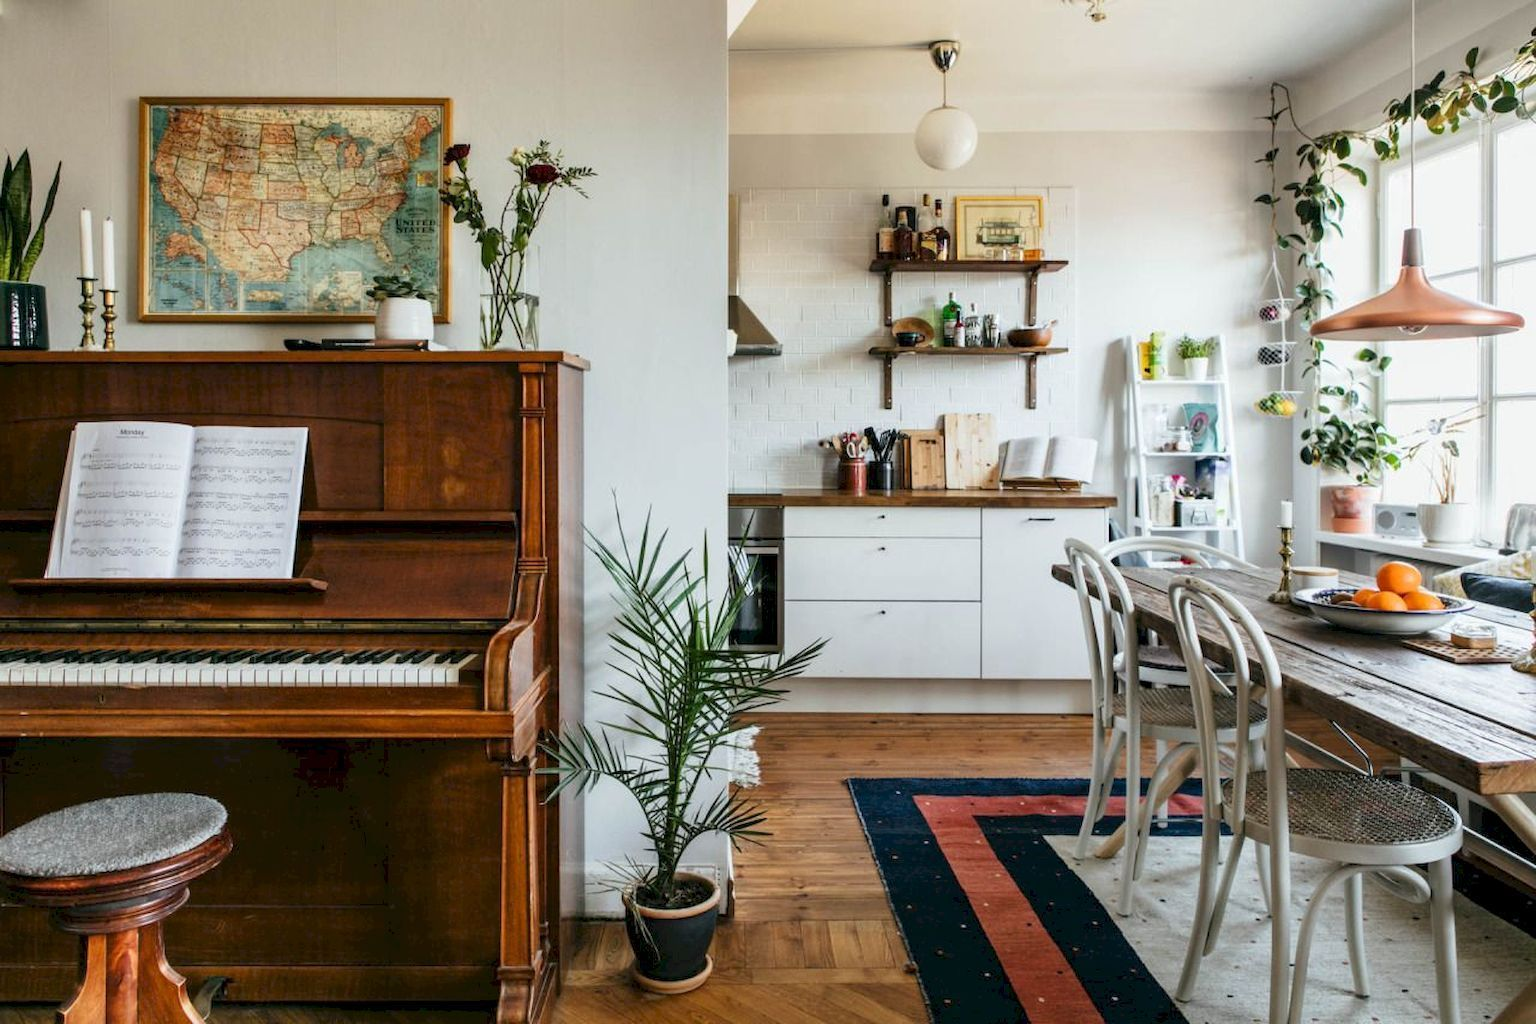 Cool 95 Cozy Apartment Decorating Ideas On A Budget Https Homespecially Com 95 Cozy Apartment Decorating Ideas Budg Cozy Apartment Decor Home Apartment Decor